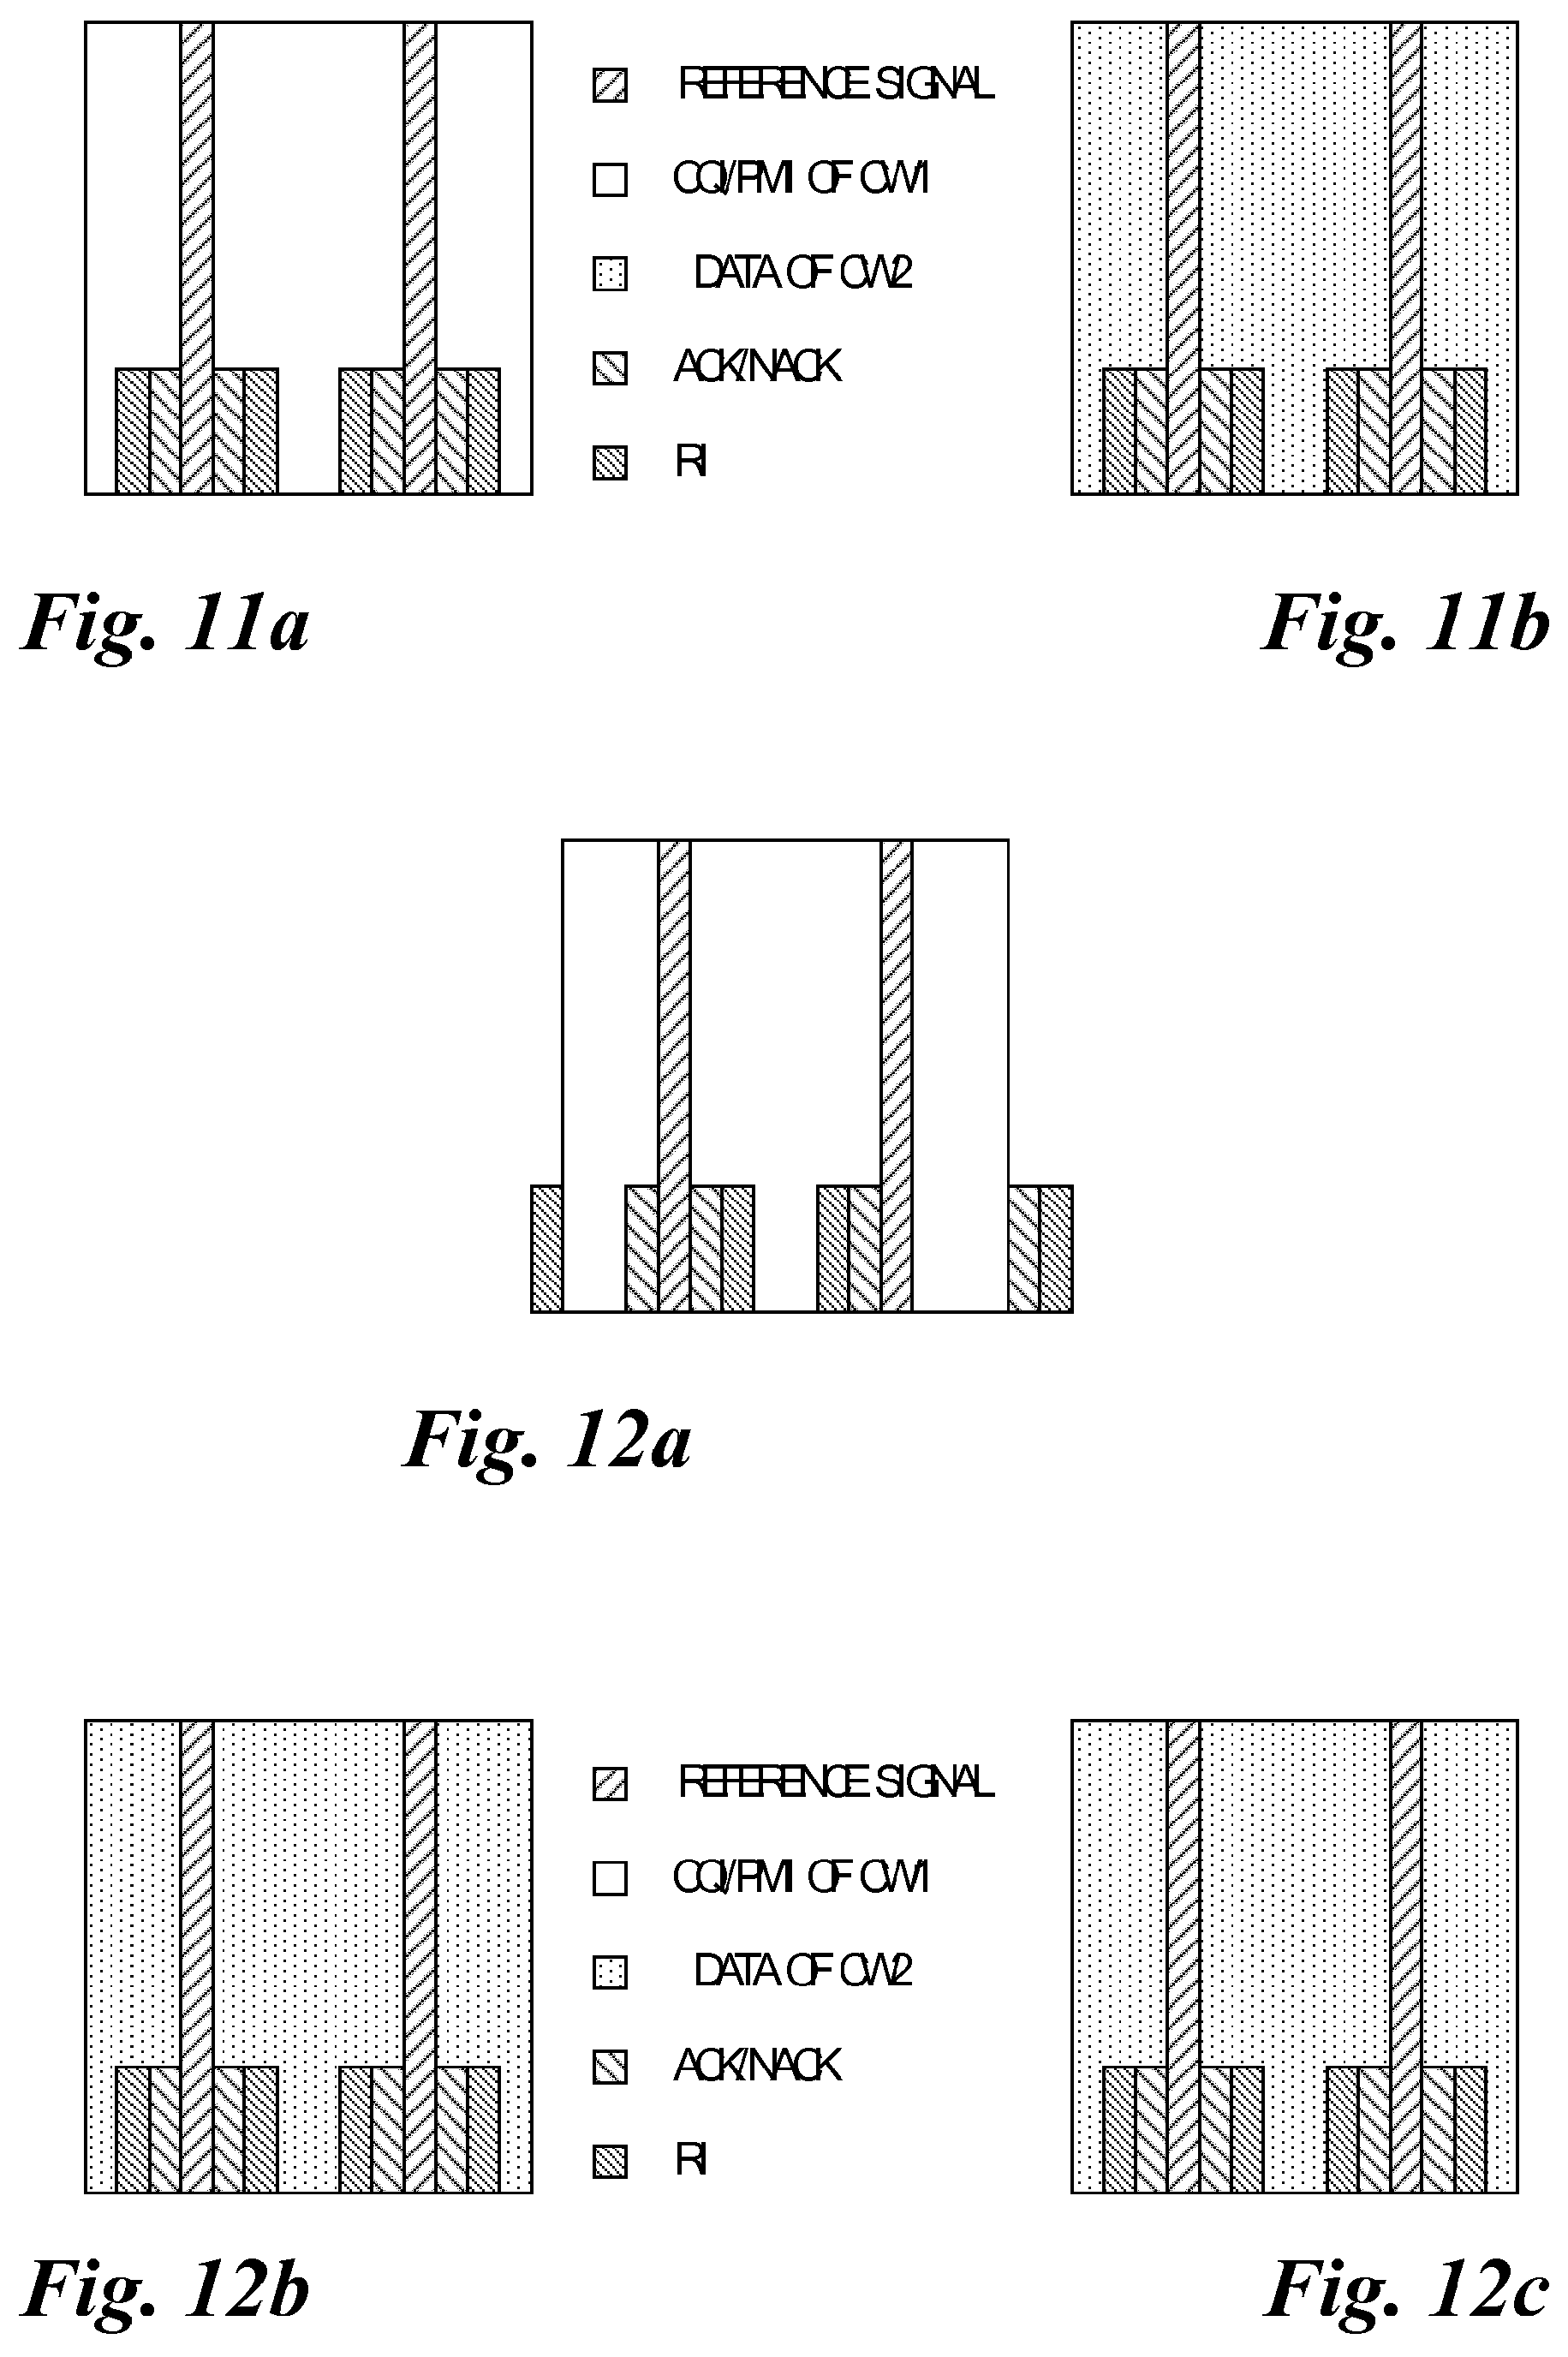 SYSTEM AND METHOD FOR CONTROL INFORMATION MULTIPLEXING FOR